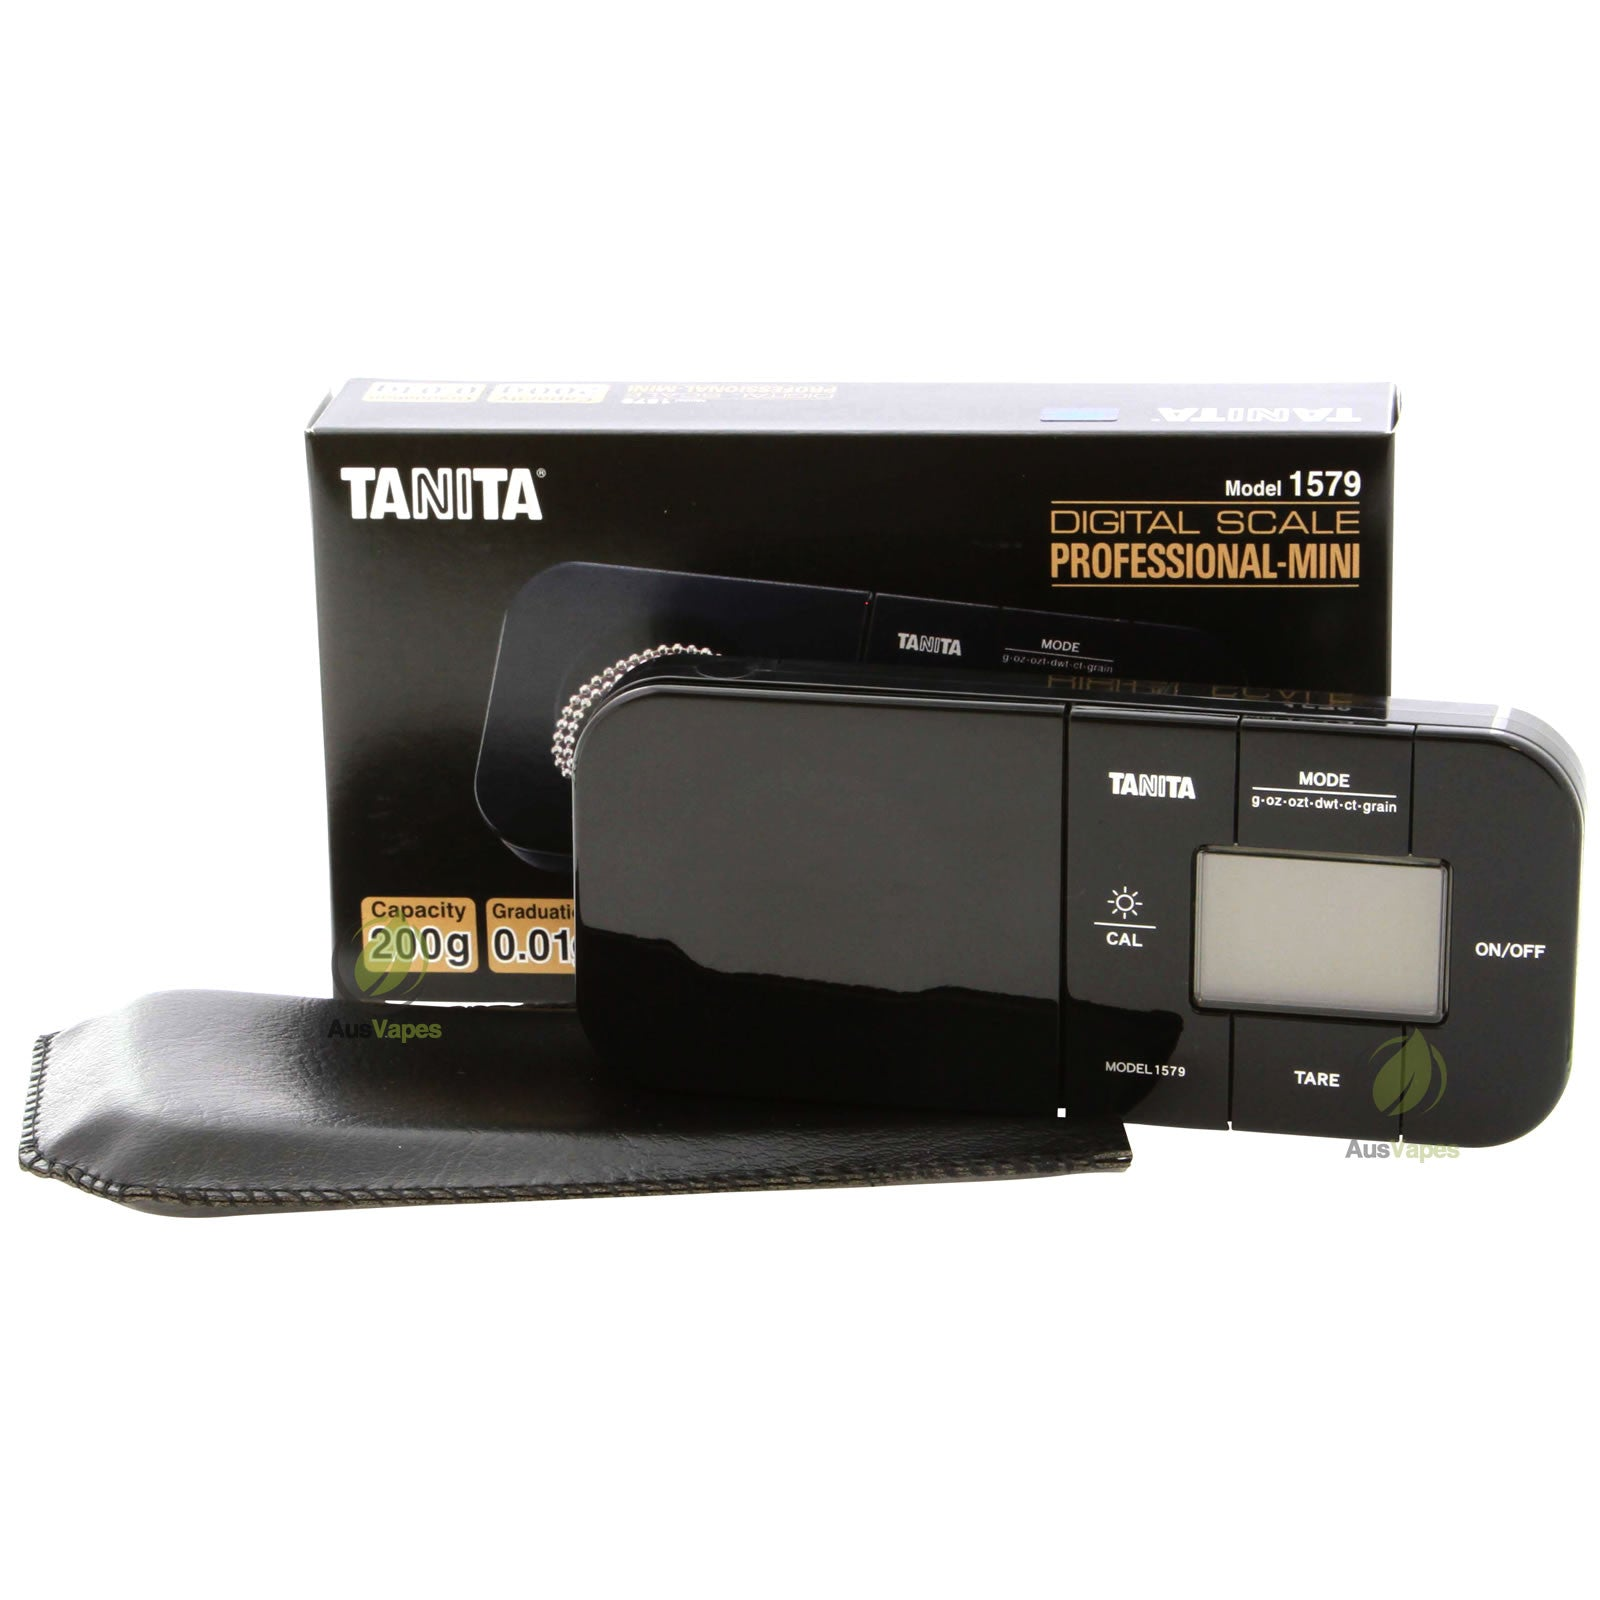 DISCONTINUED Tanita Professional 1579 Mini Digital Scale 200g x 0.01g